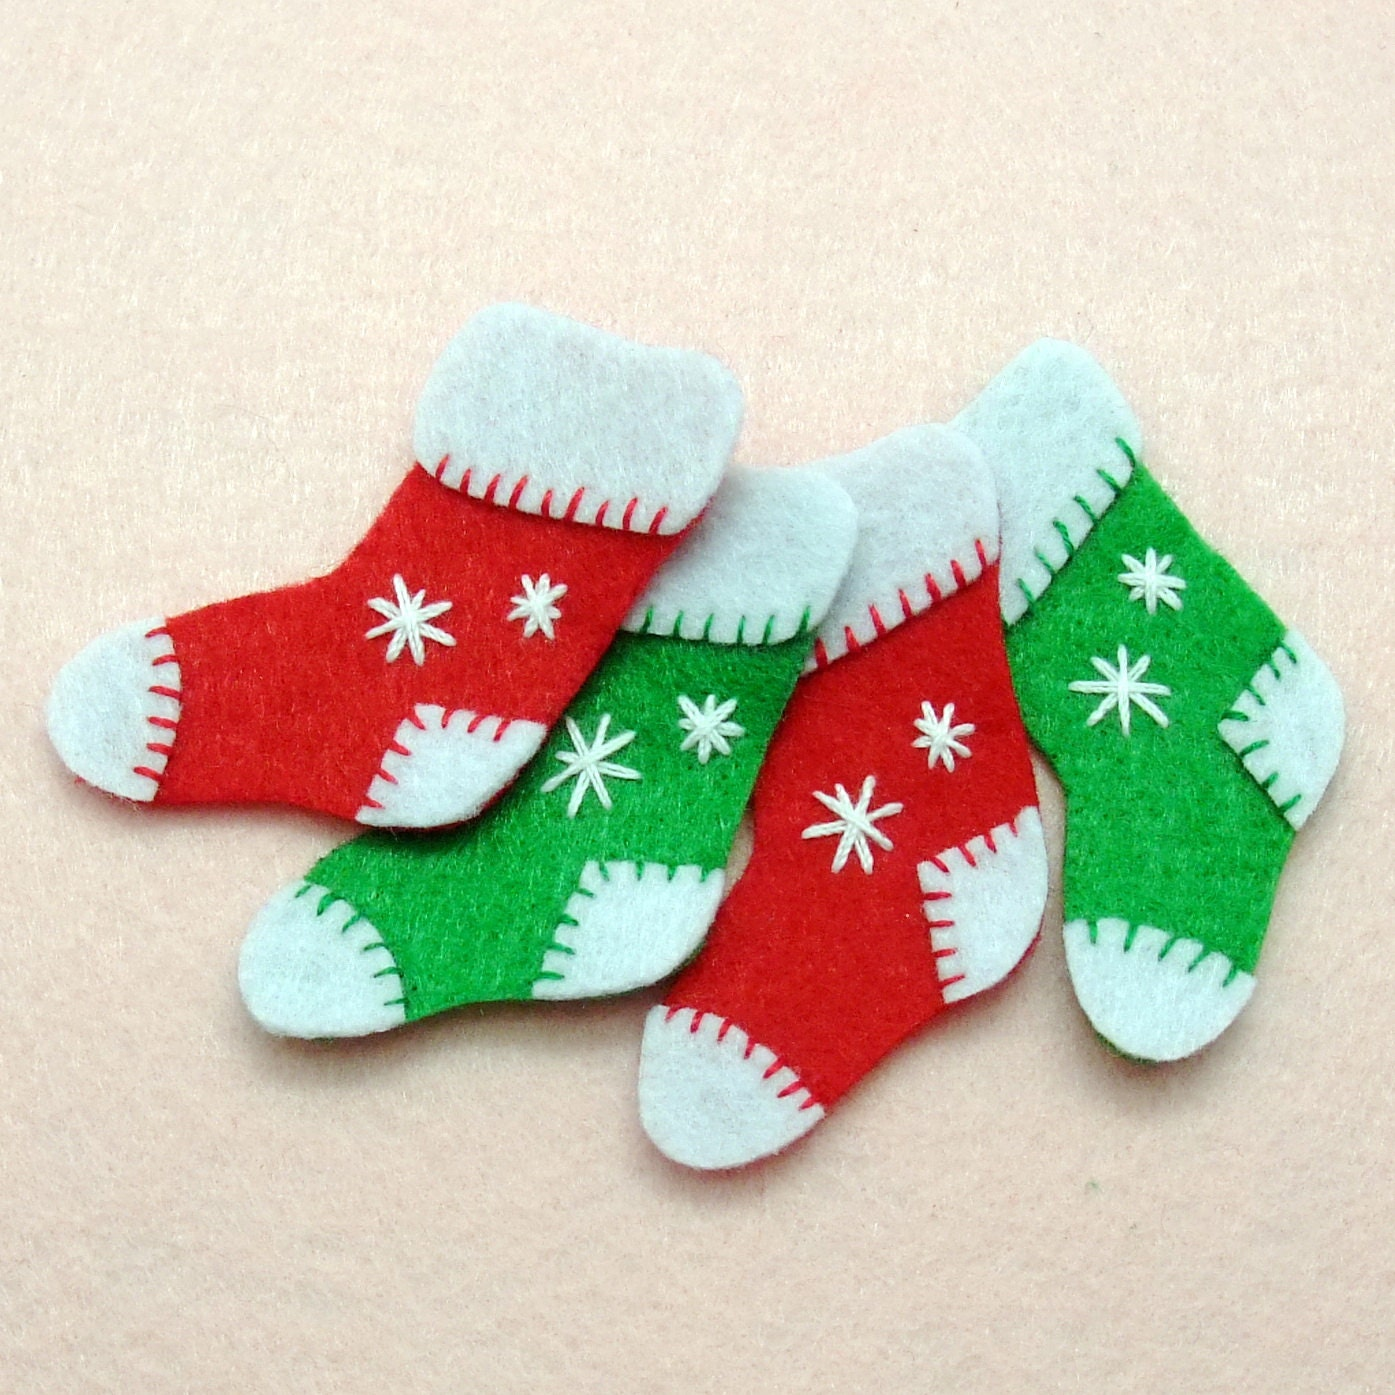 4 Pcs Handmade Christmas Stockings Felt By Silverbreezebag